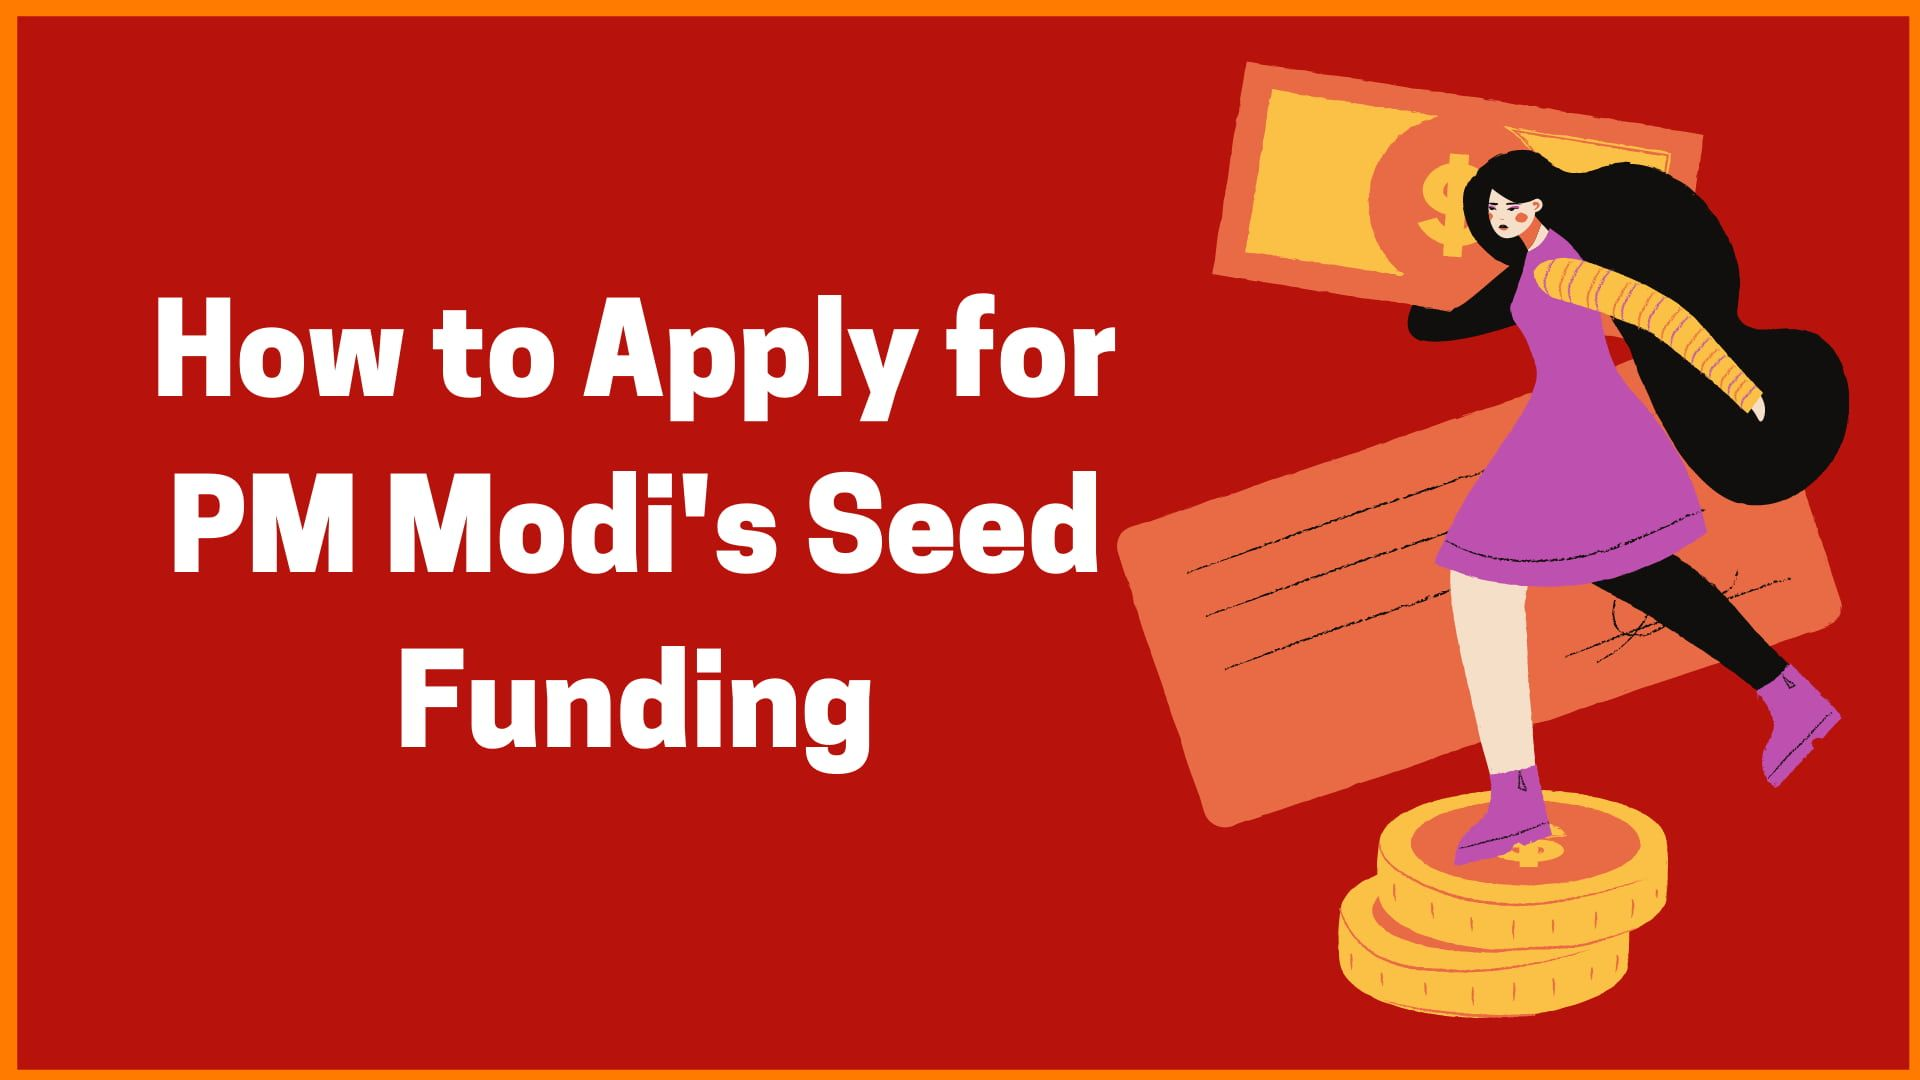 How to Apply for PM Modi's Seed Funding